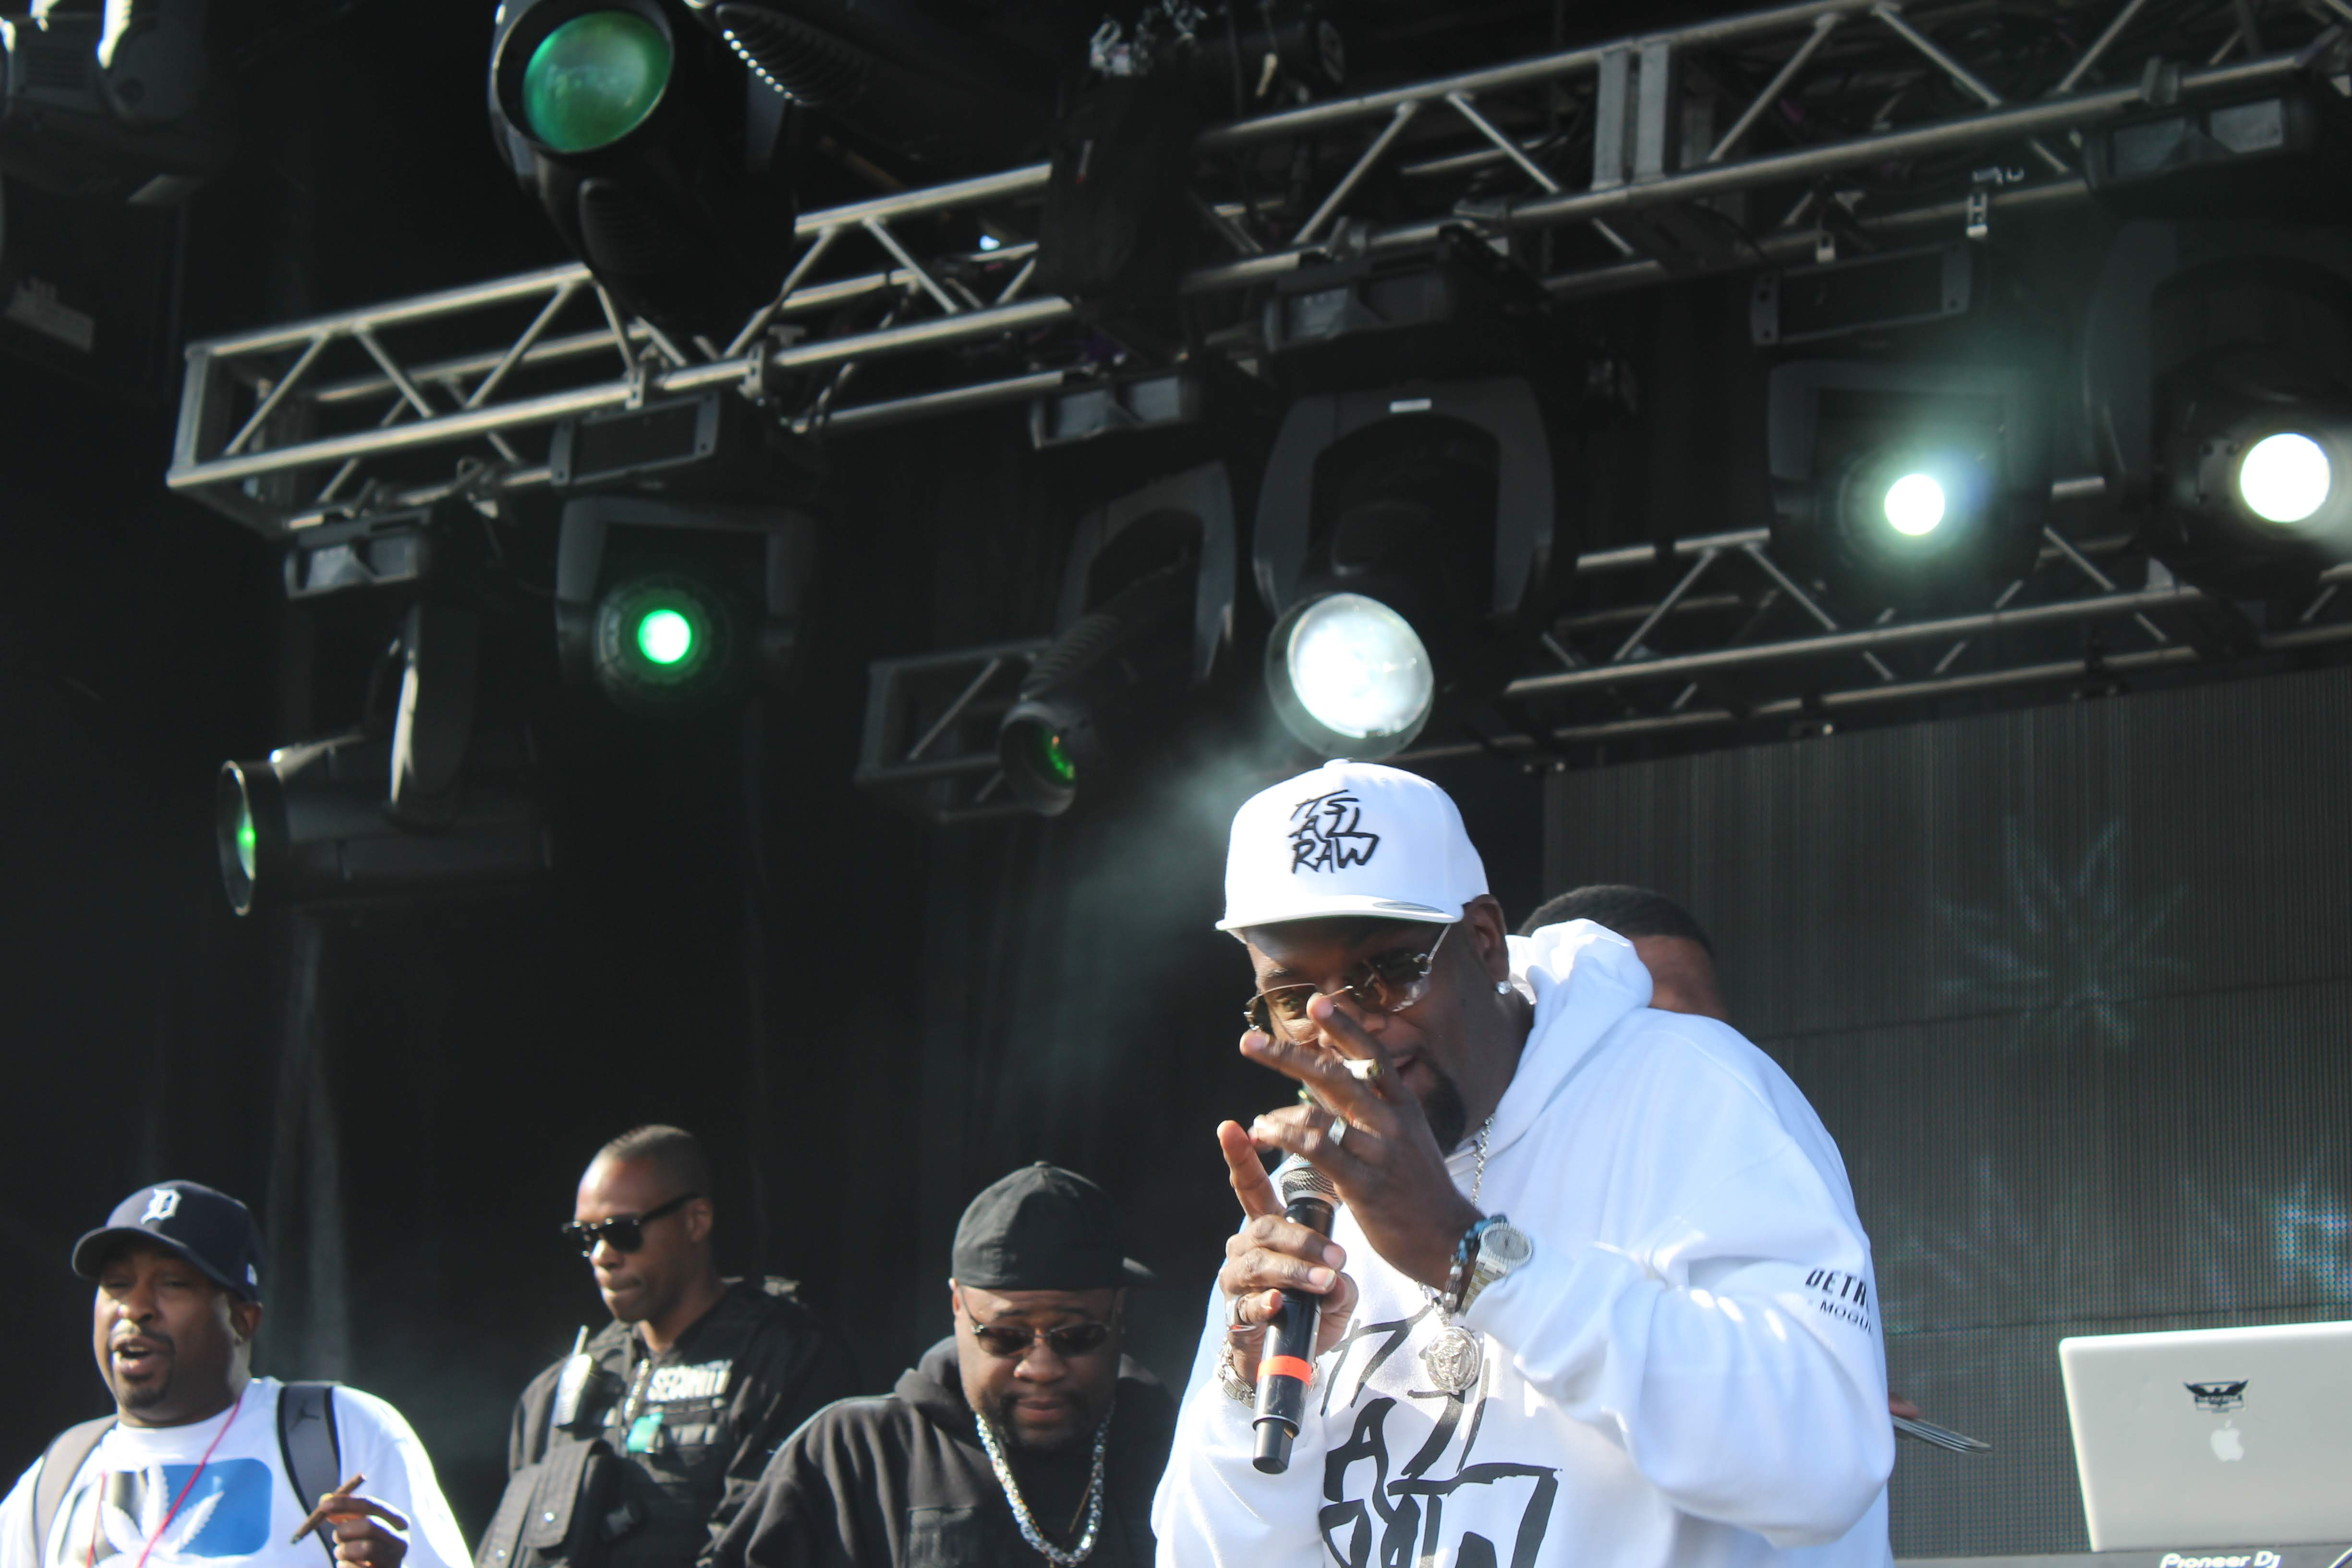 Photo of rapper Trick Trick performing at Midwest Cannabis Cup